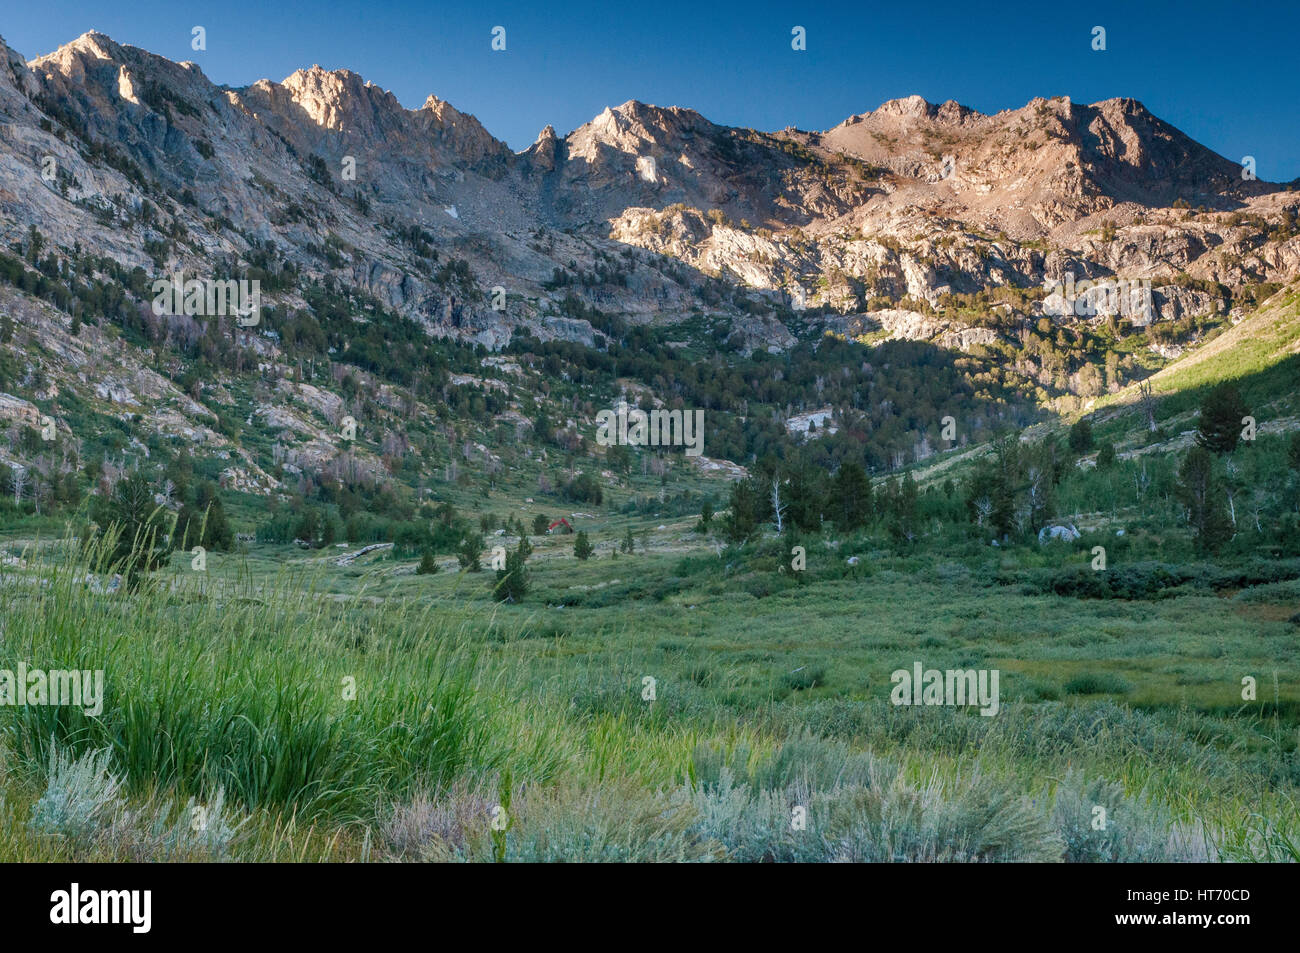 lamoille canyon in ruby mountains, near elko, nevada, usa stock